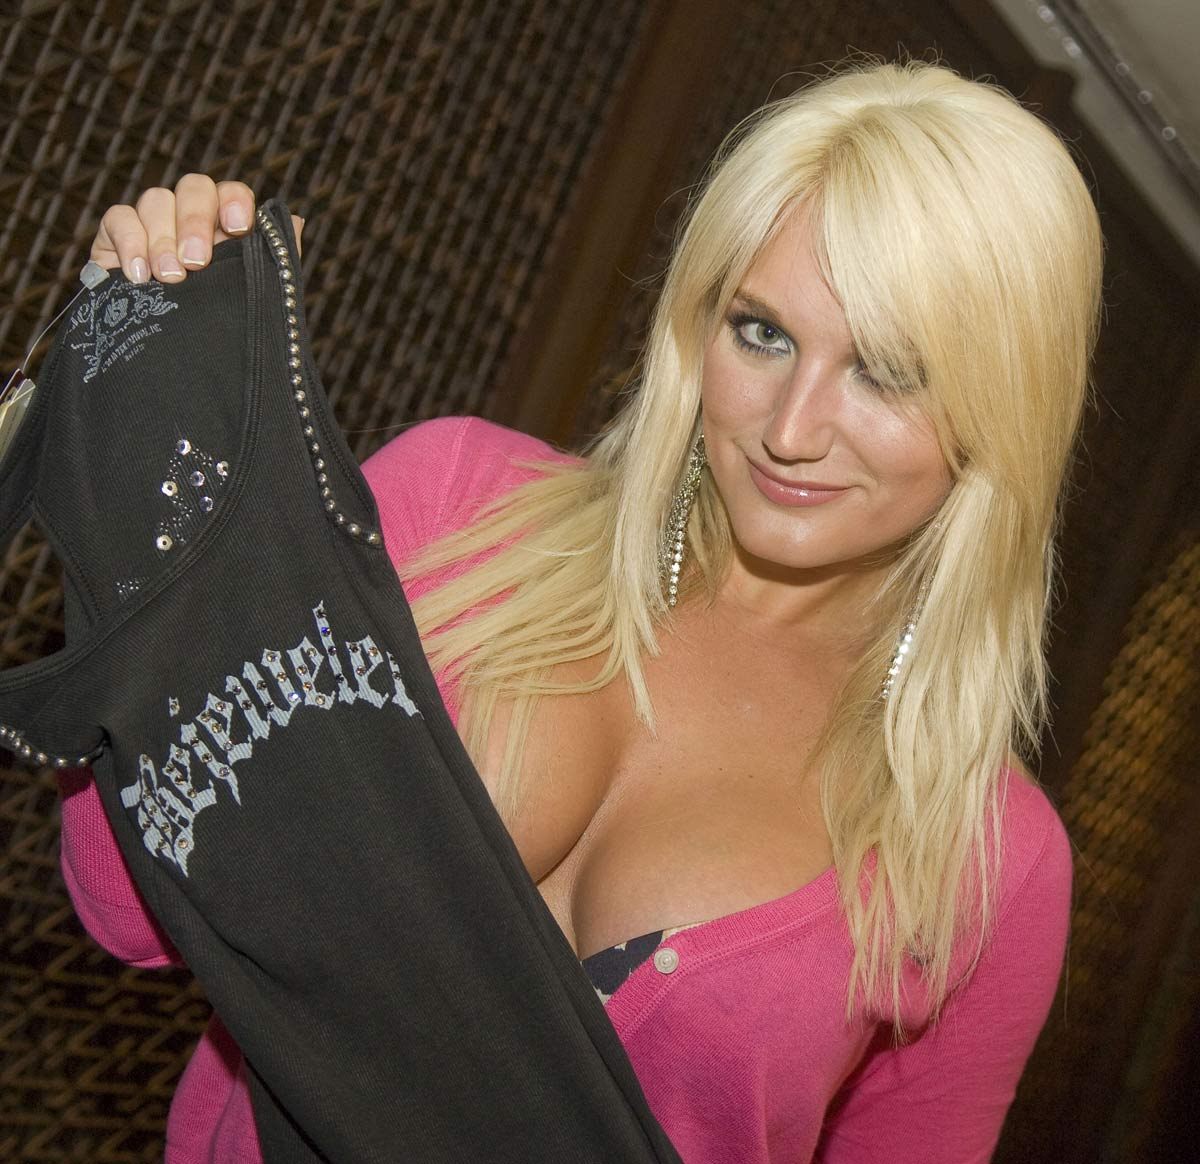 brooke hogan hot